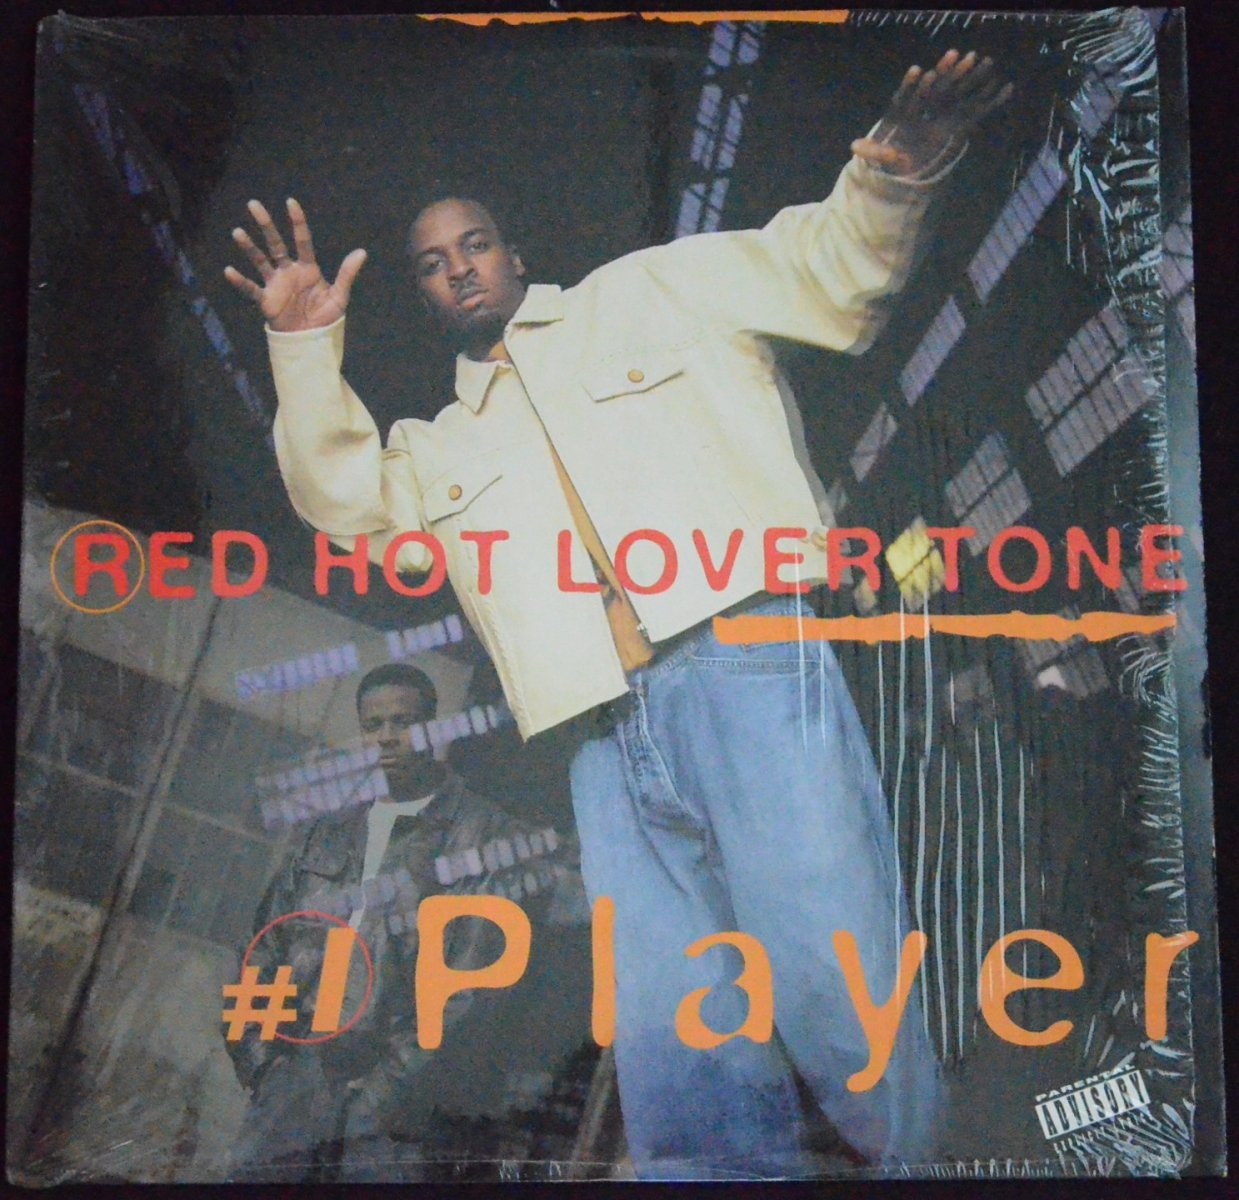 RED HOT LOVER TONE ‎/ #1 PLAYER (1LP)